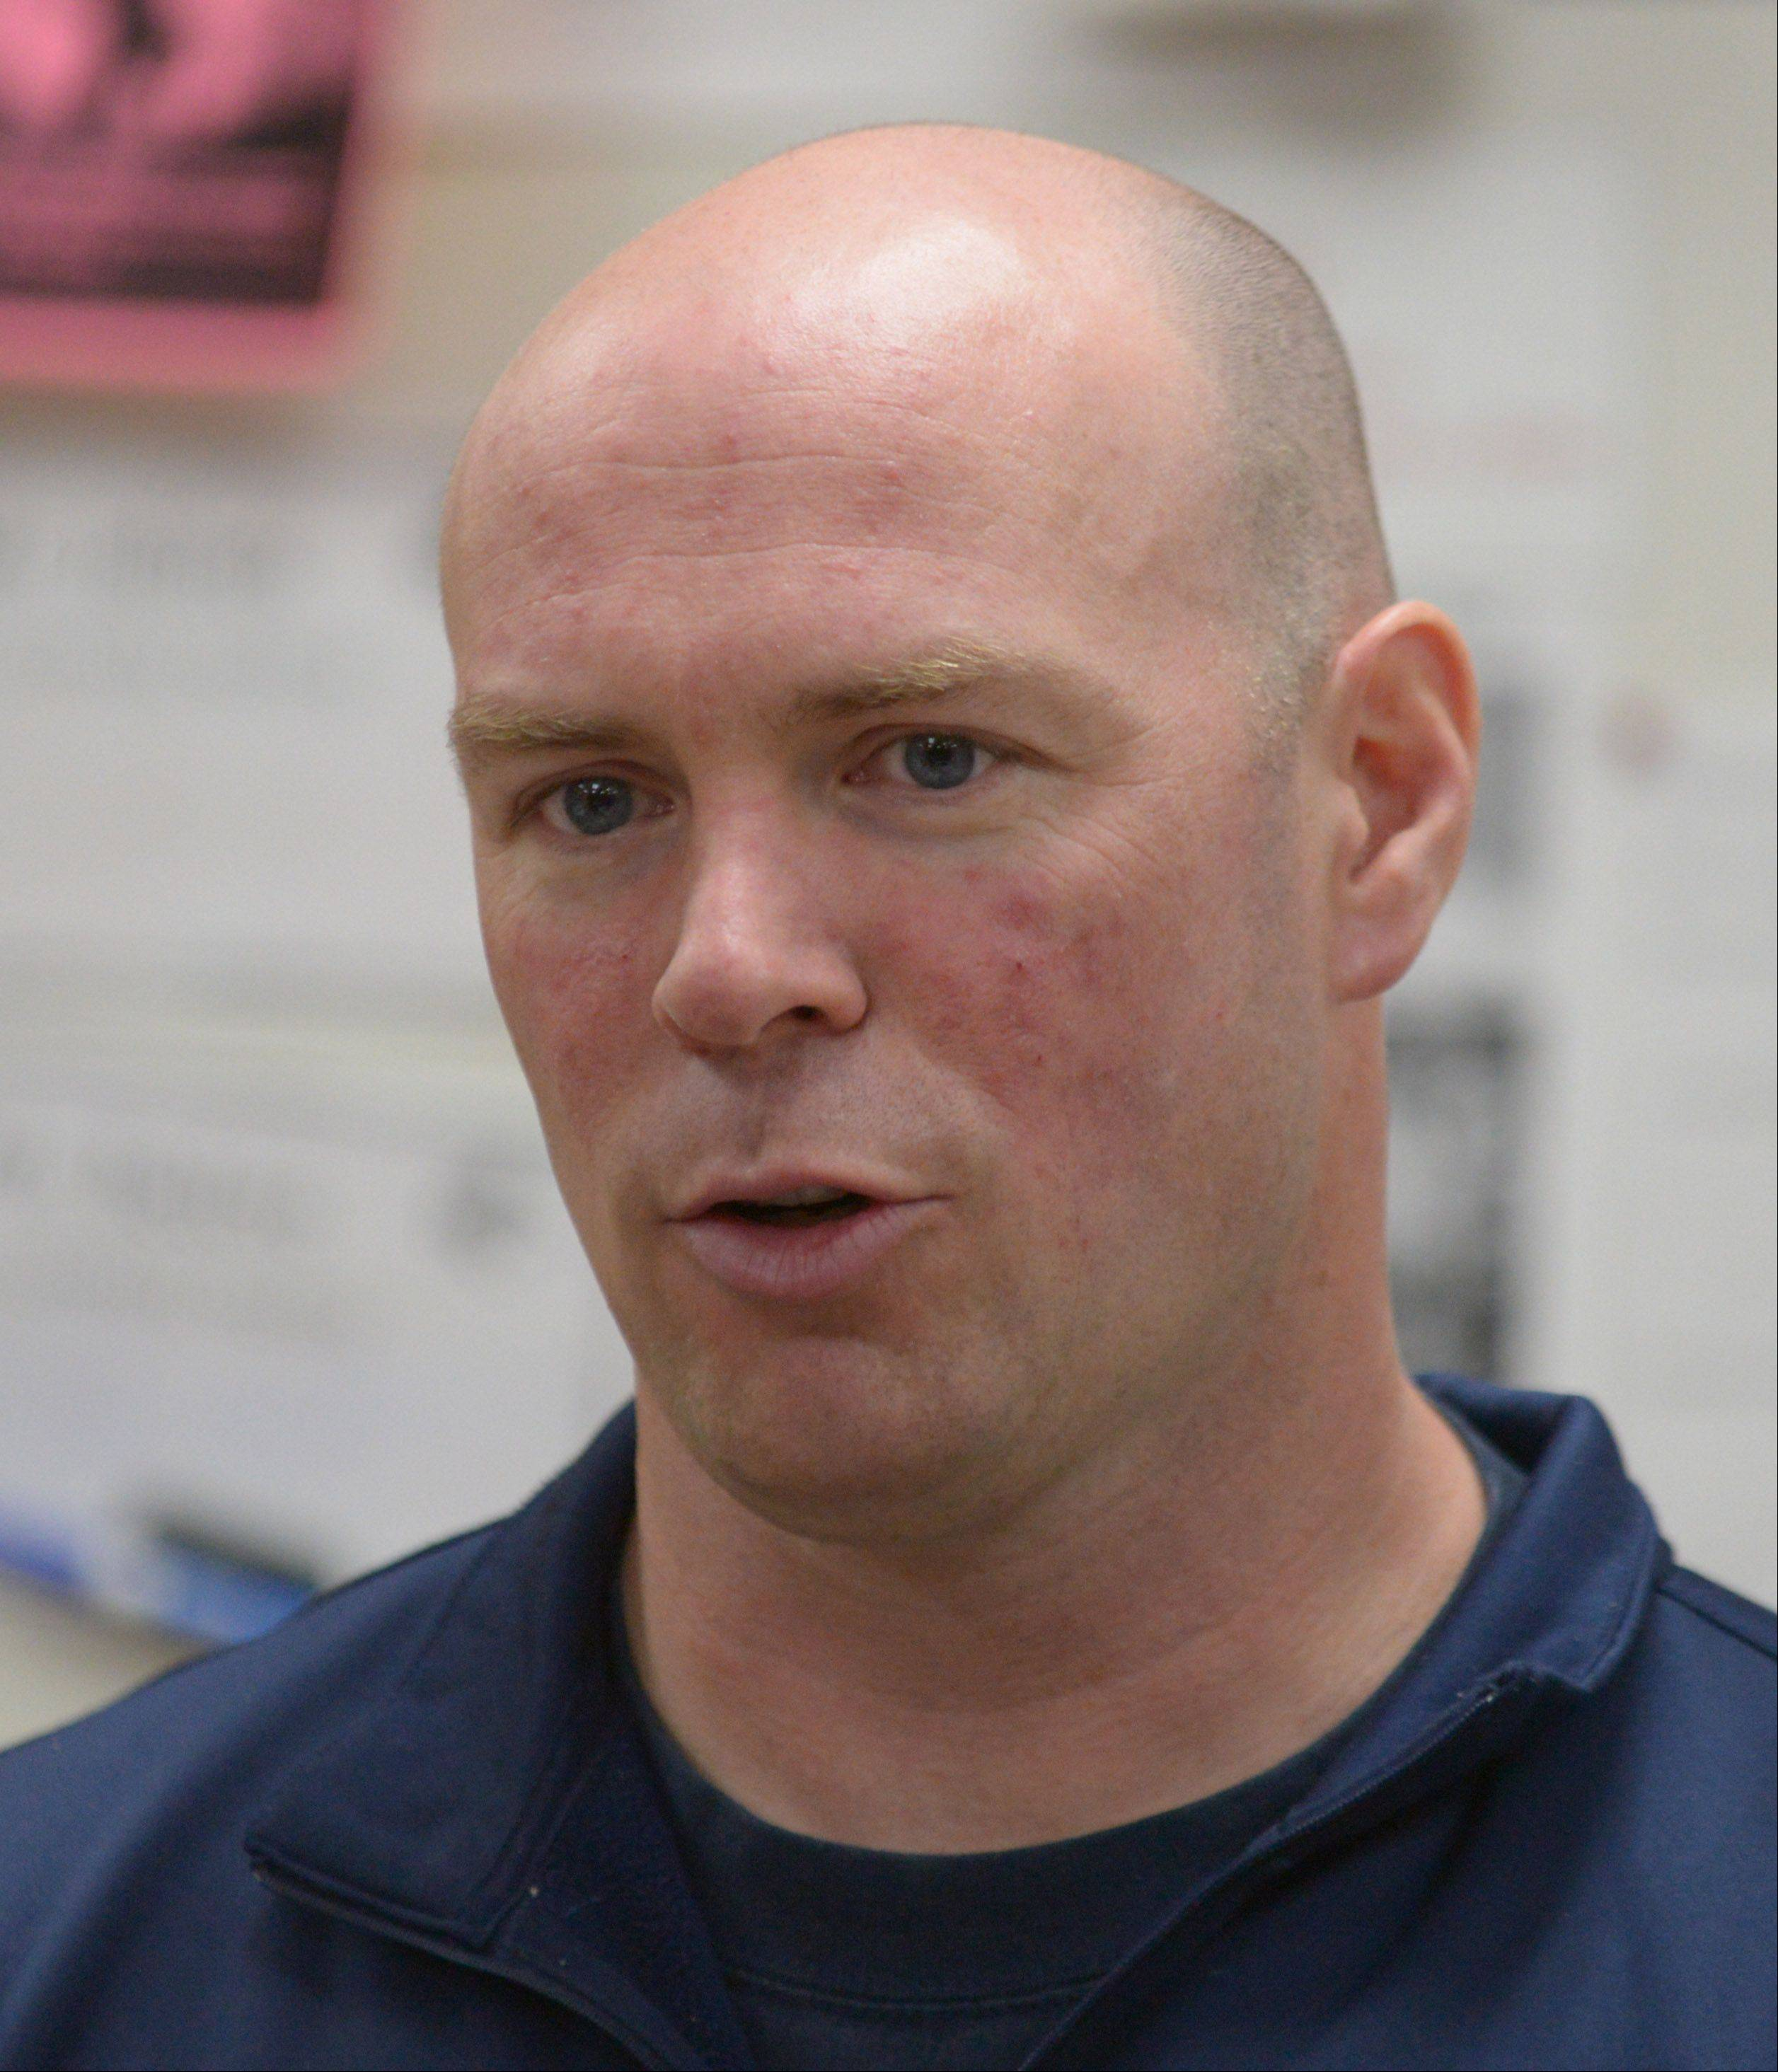 Michael Jelinek, an assistant football coach at North, has helped players become leaders by speaking to them regularly about the components of leadership and service.